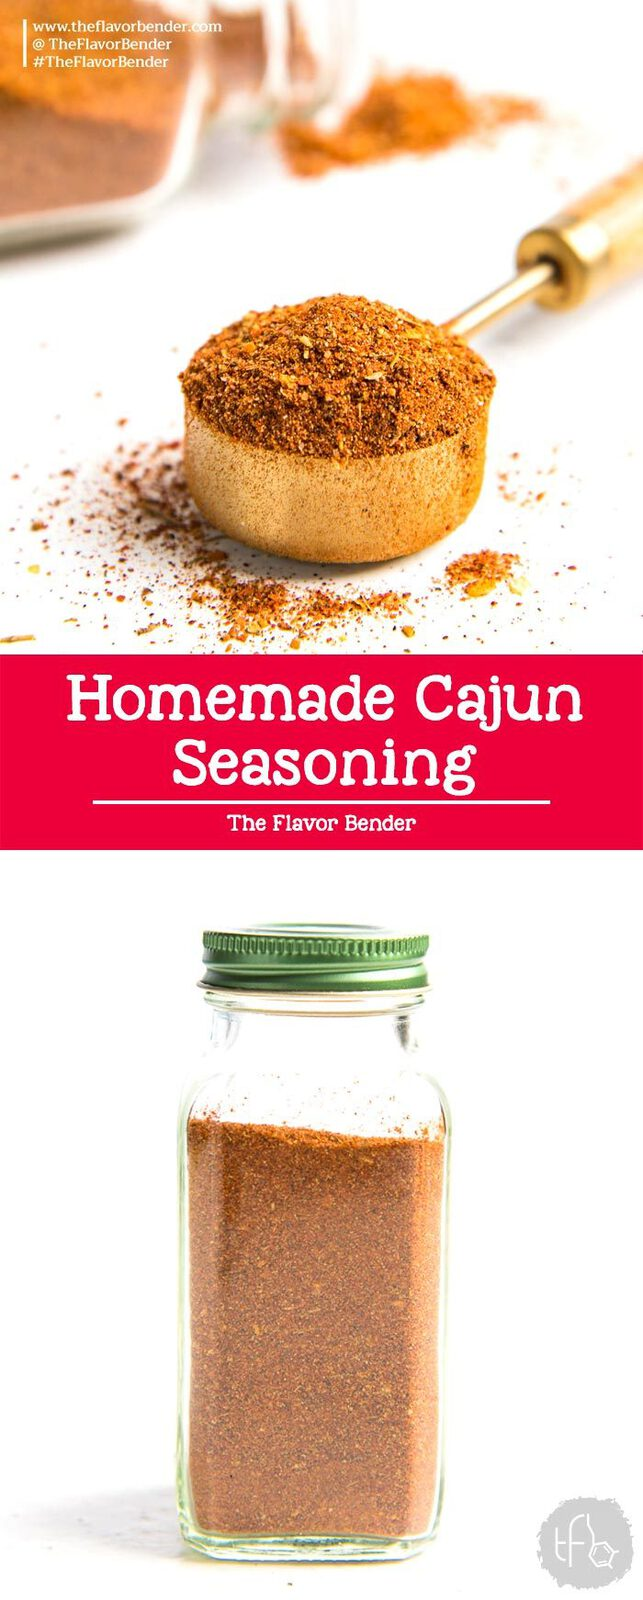 Cajun Seasoning Recipe - An easy and simple Cajun seasoning recipe that can be made in minutes with spices you can already find in your pantry. Smokey, spicy, and herby, it will make all your Cajun dishes taste even better! #CajunSeasoningRecipe #SpiceMixes #EasyRecipes